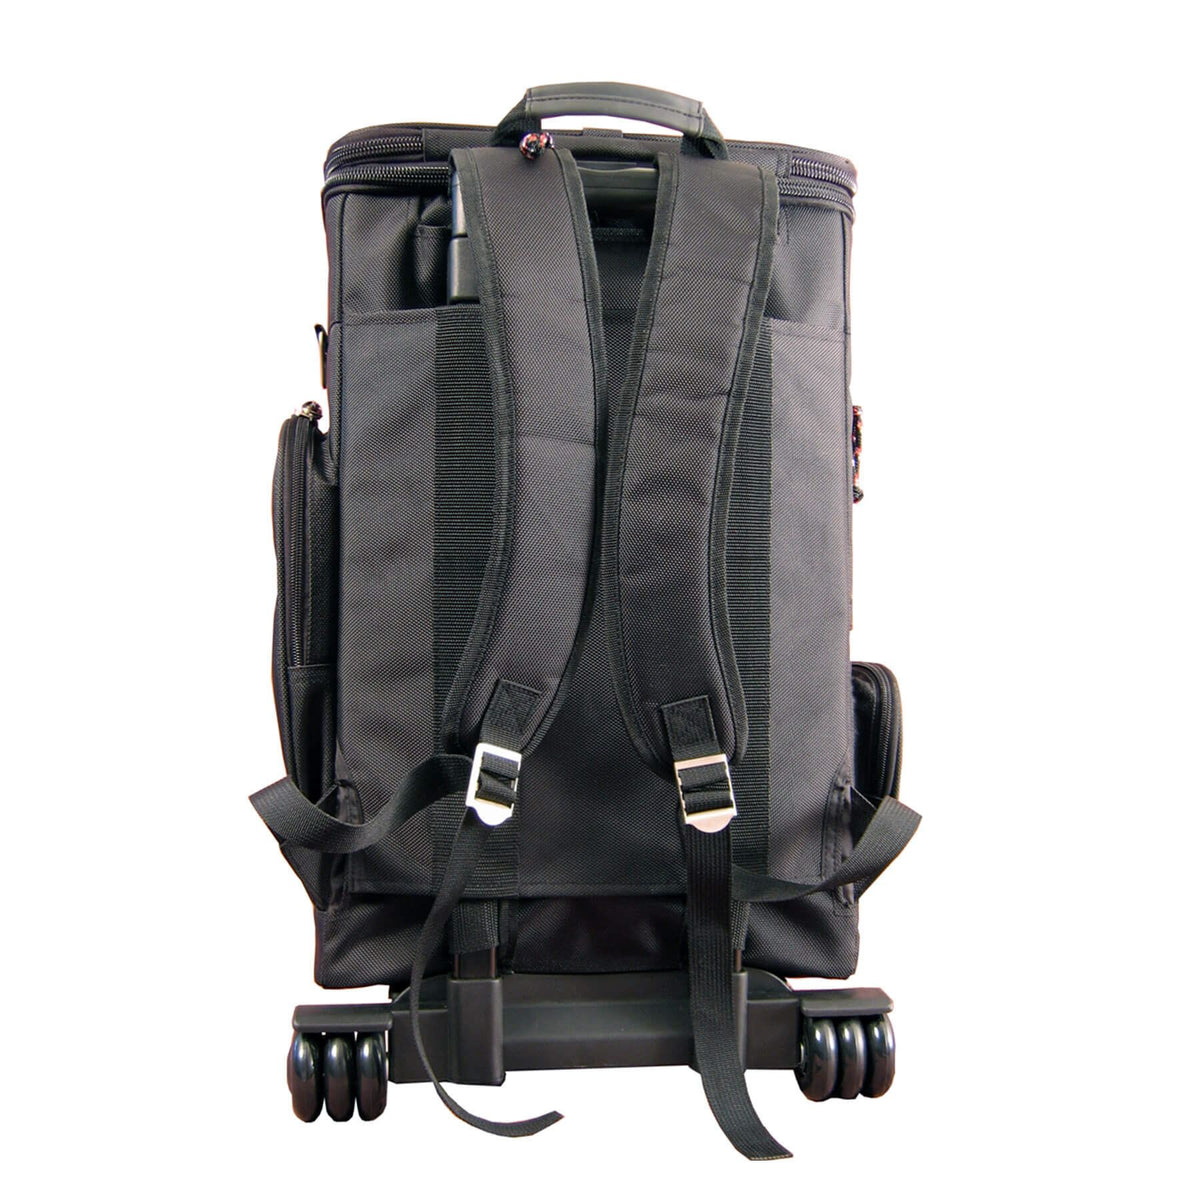 Gator Cases Gear & Laptop Backpack fits Roger Linn Design LinnStrument